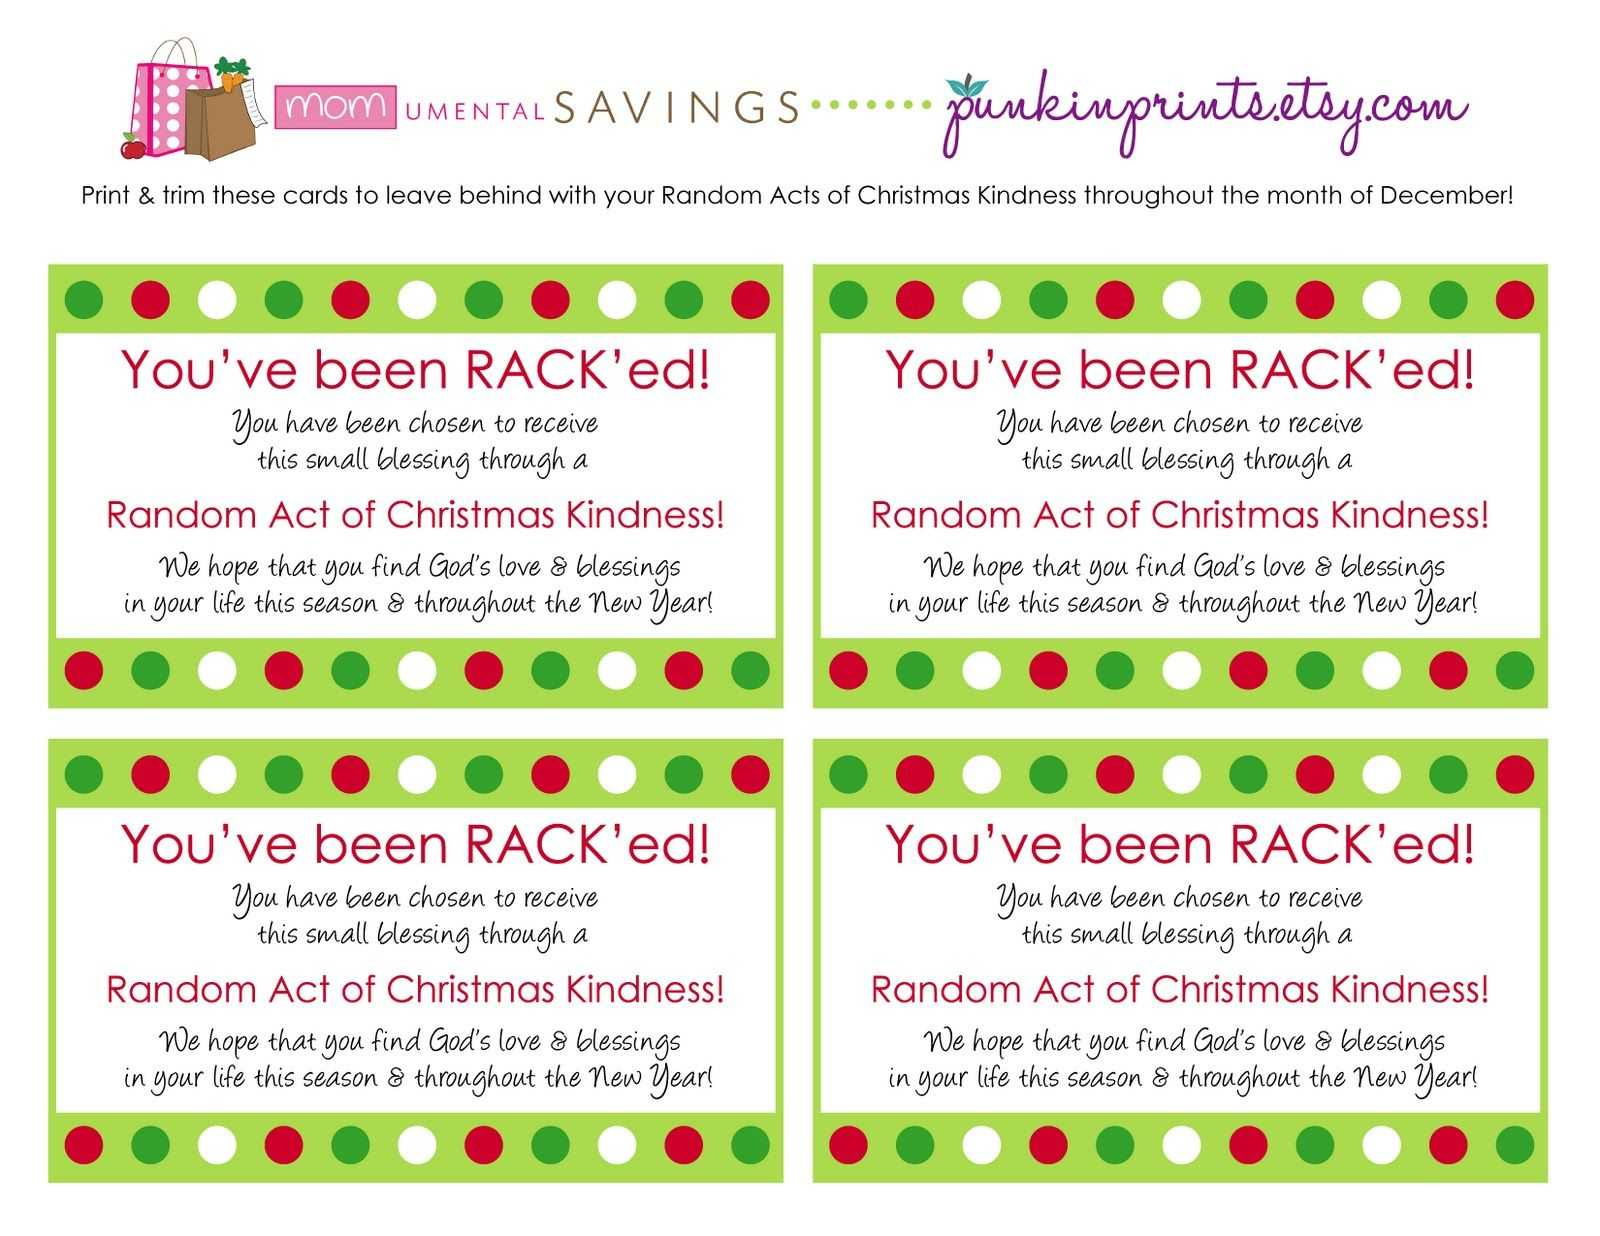 Random Act Of Christmas Kindness Cards   Get The Rack'd throughout Random Acts Of Kindness Cards Templates